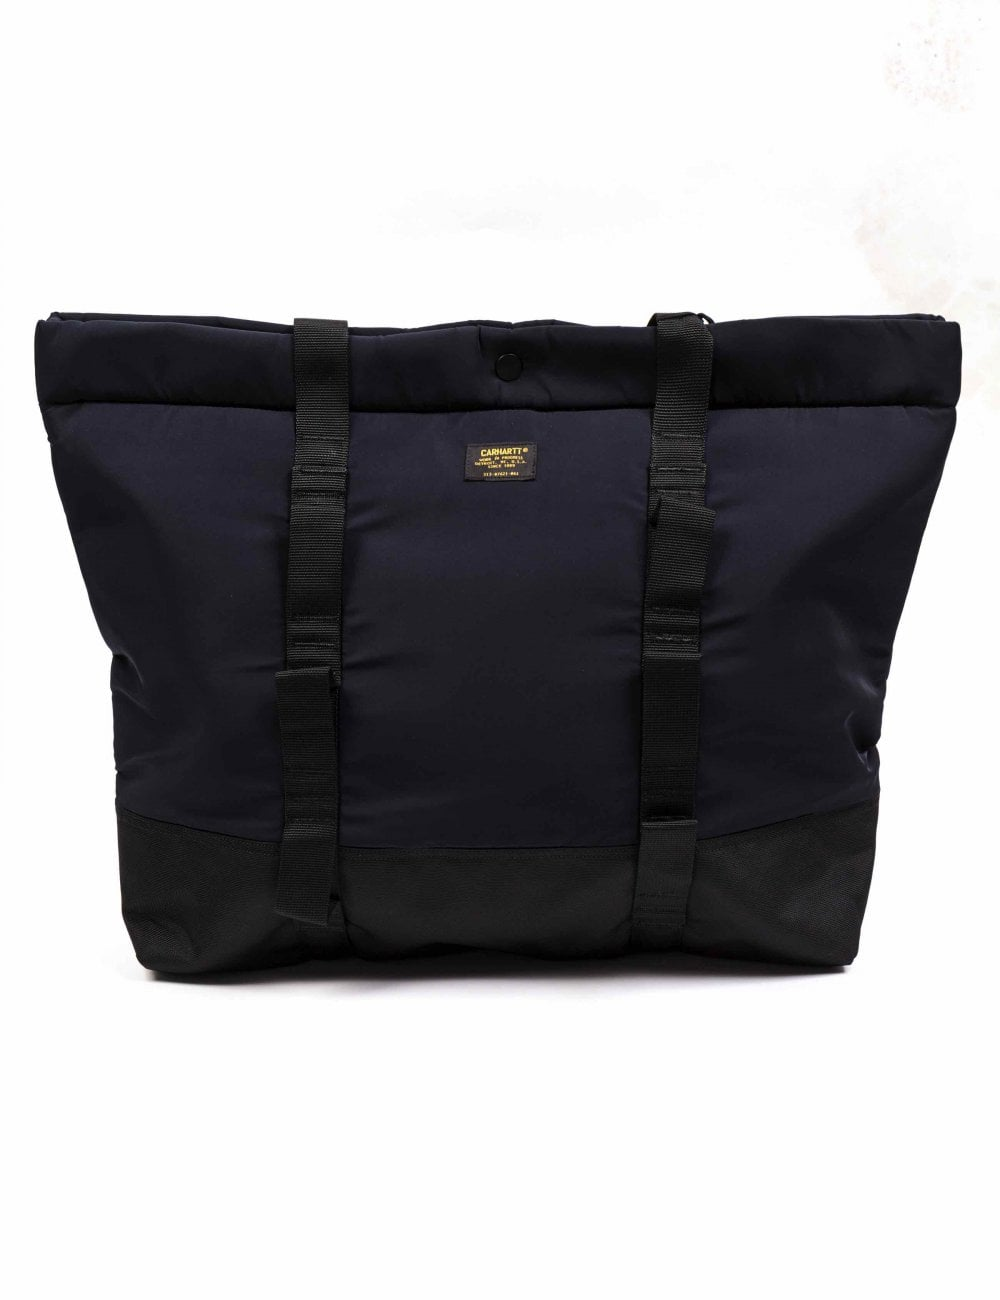 c3935eca4212 Carhartt WIP Military Shopper Tote Bag - Dark Navy Black ...